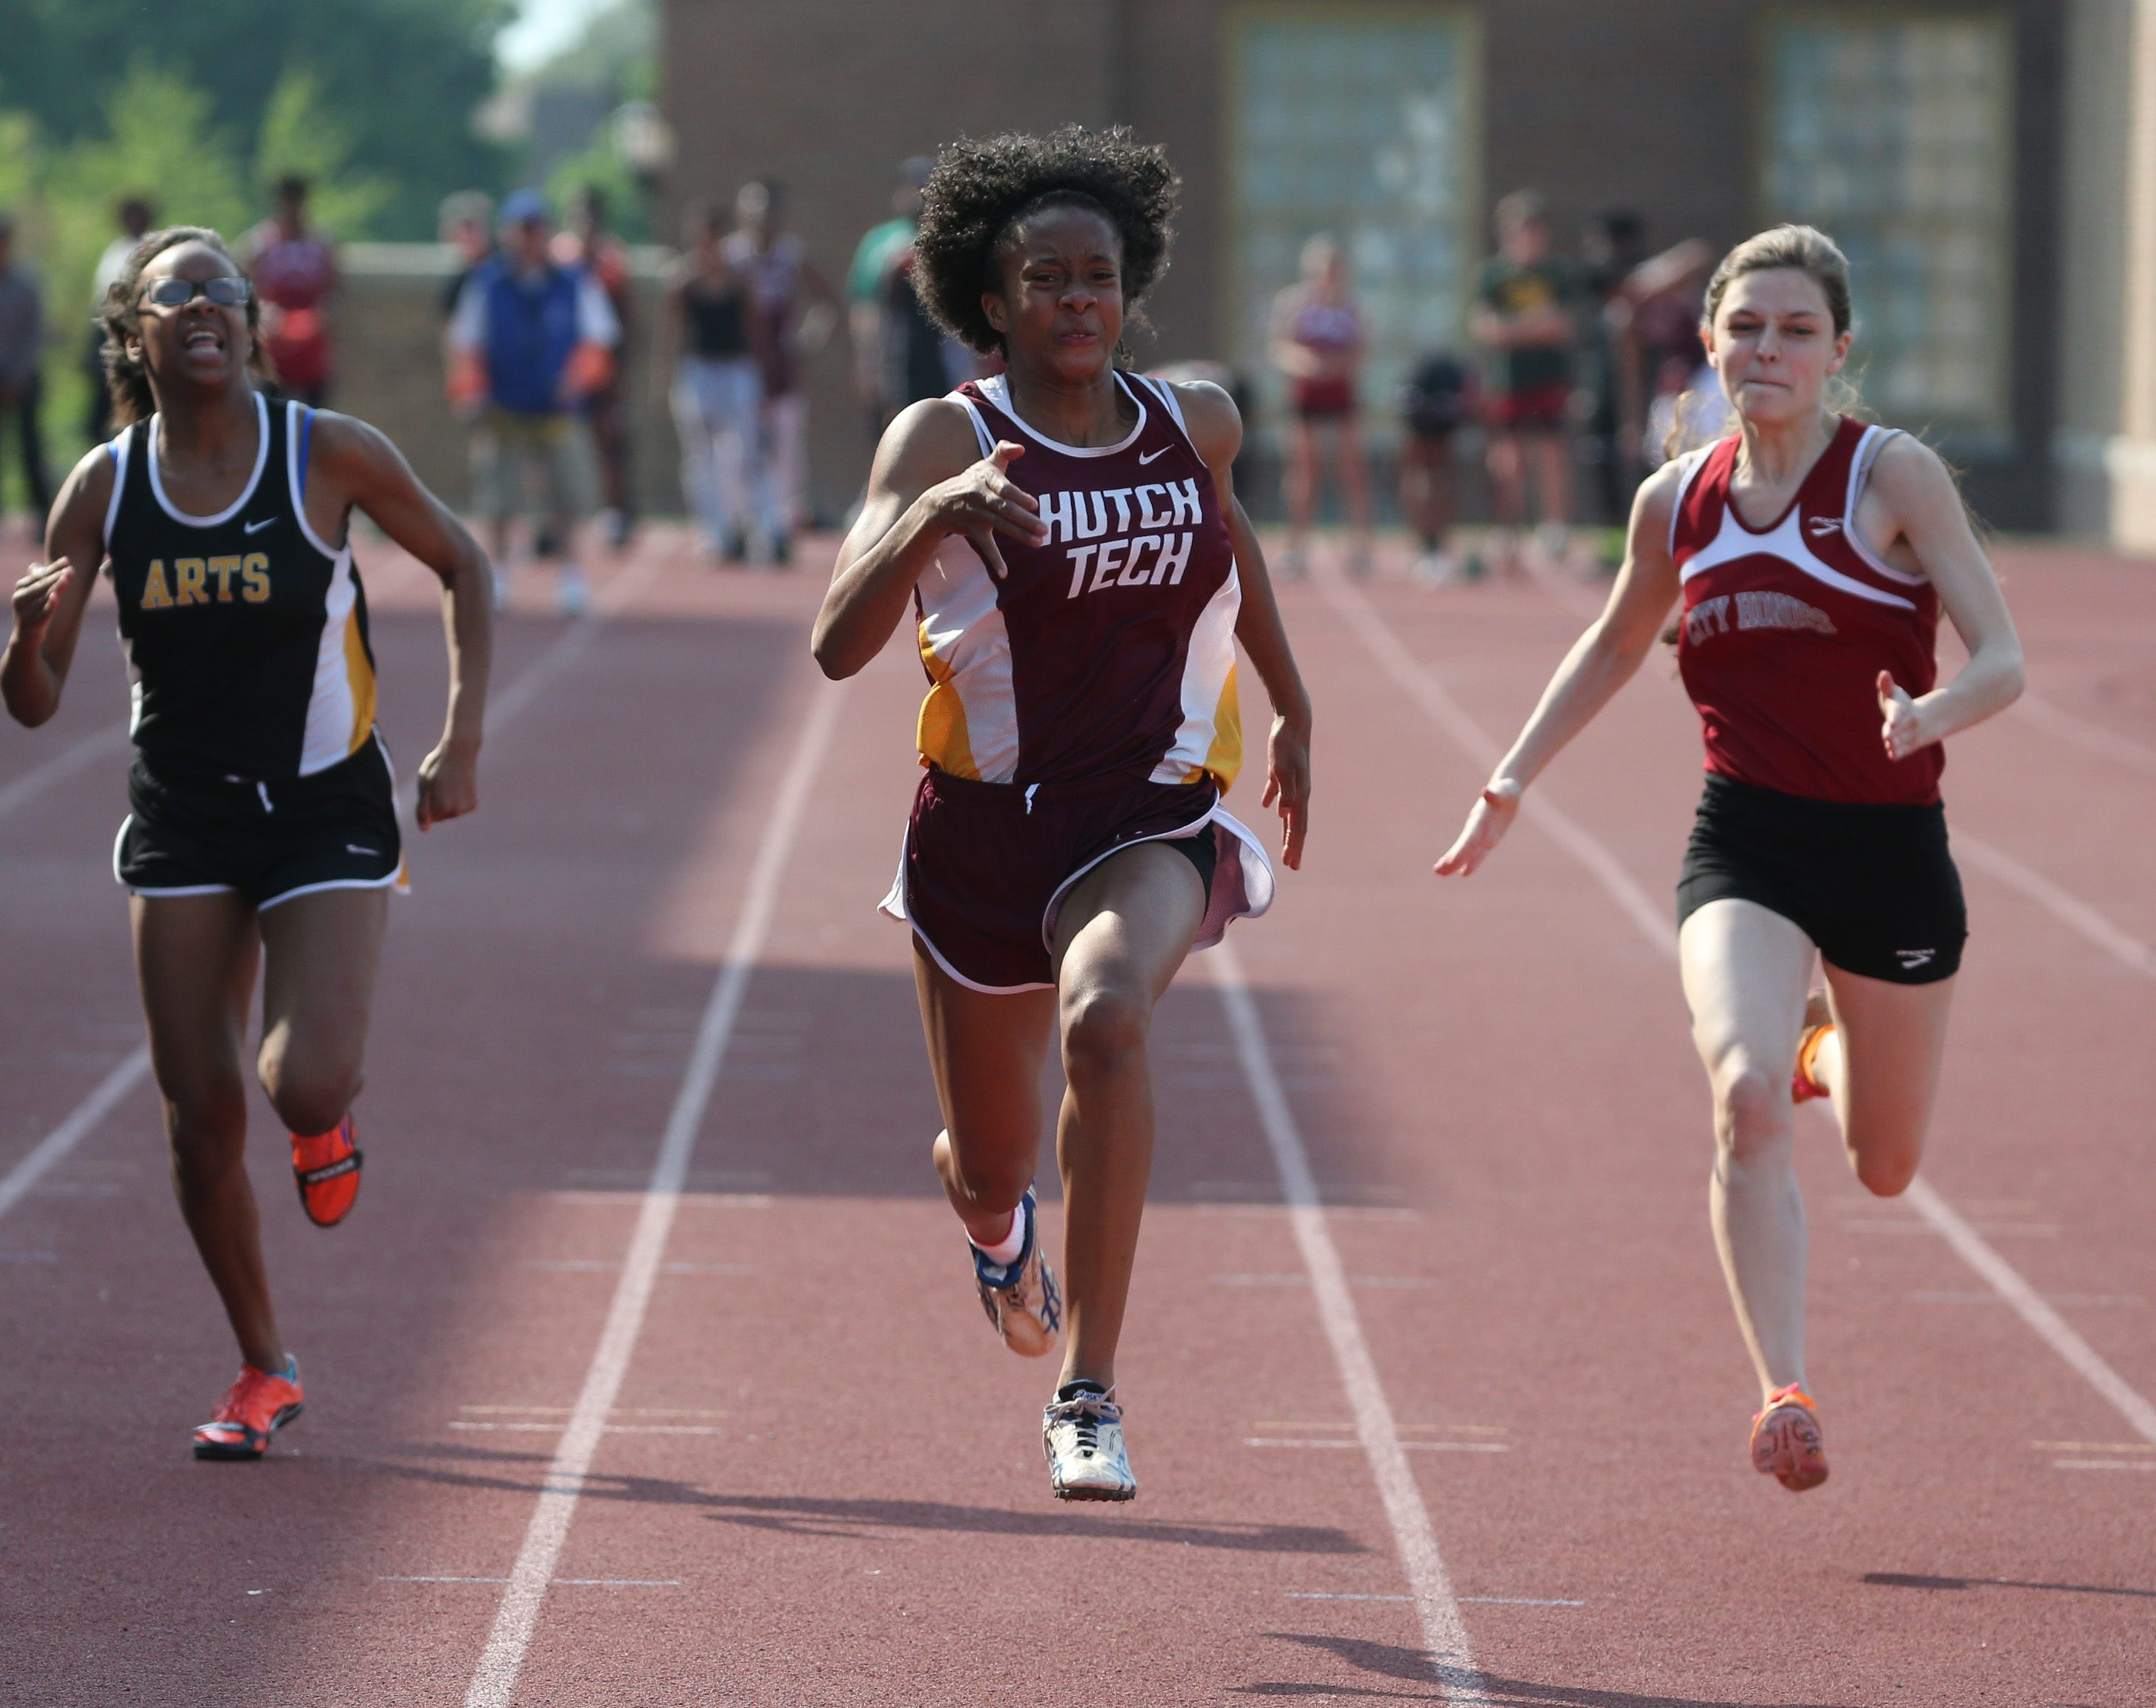 Hutch-Tech's Lynda Brundige wins the girls 100 meters in the All-High Track and Field Championships.